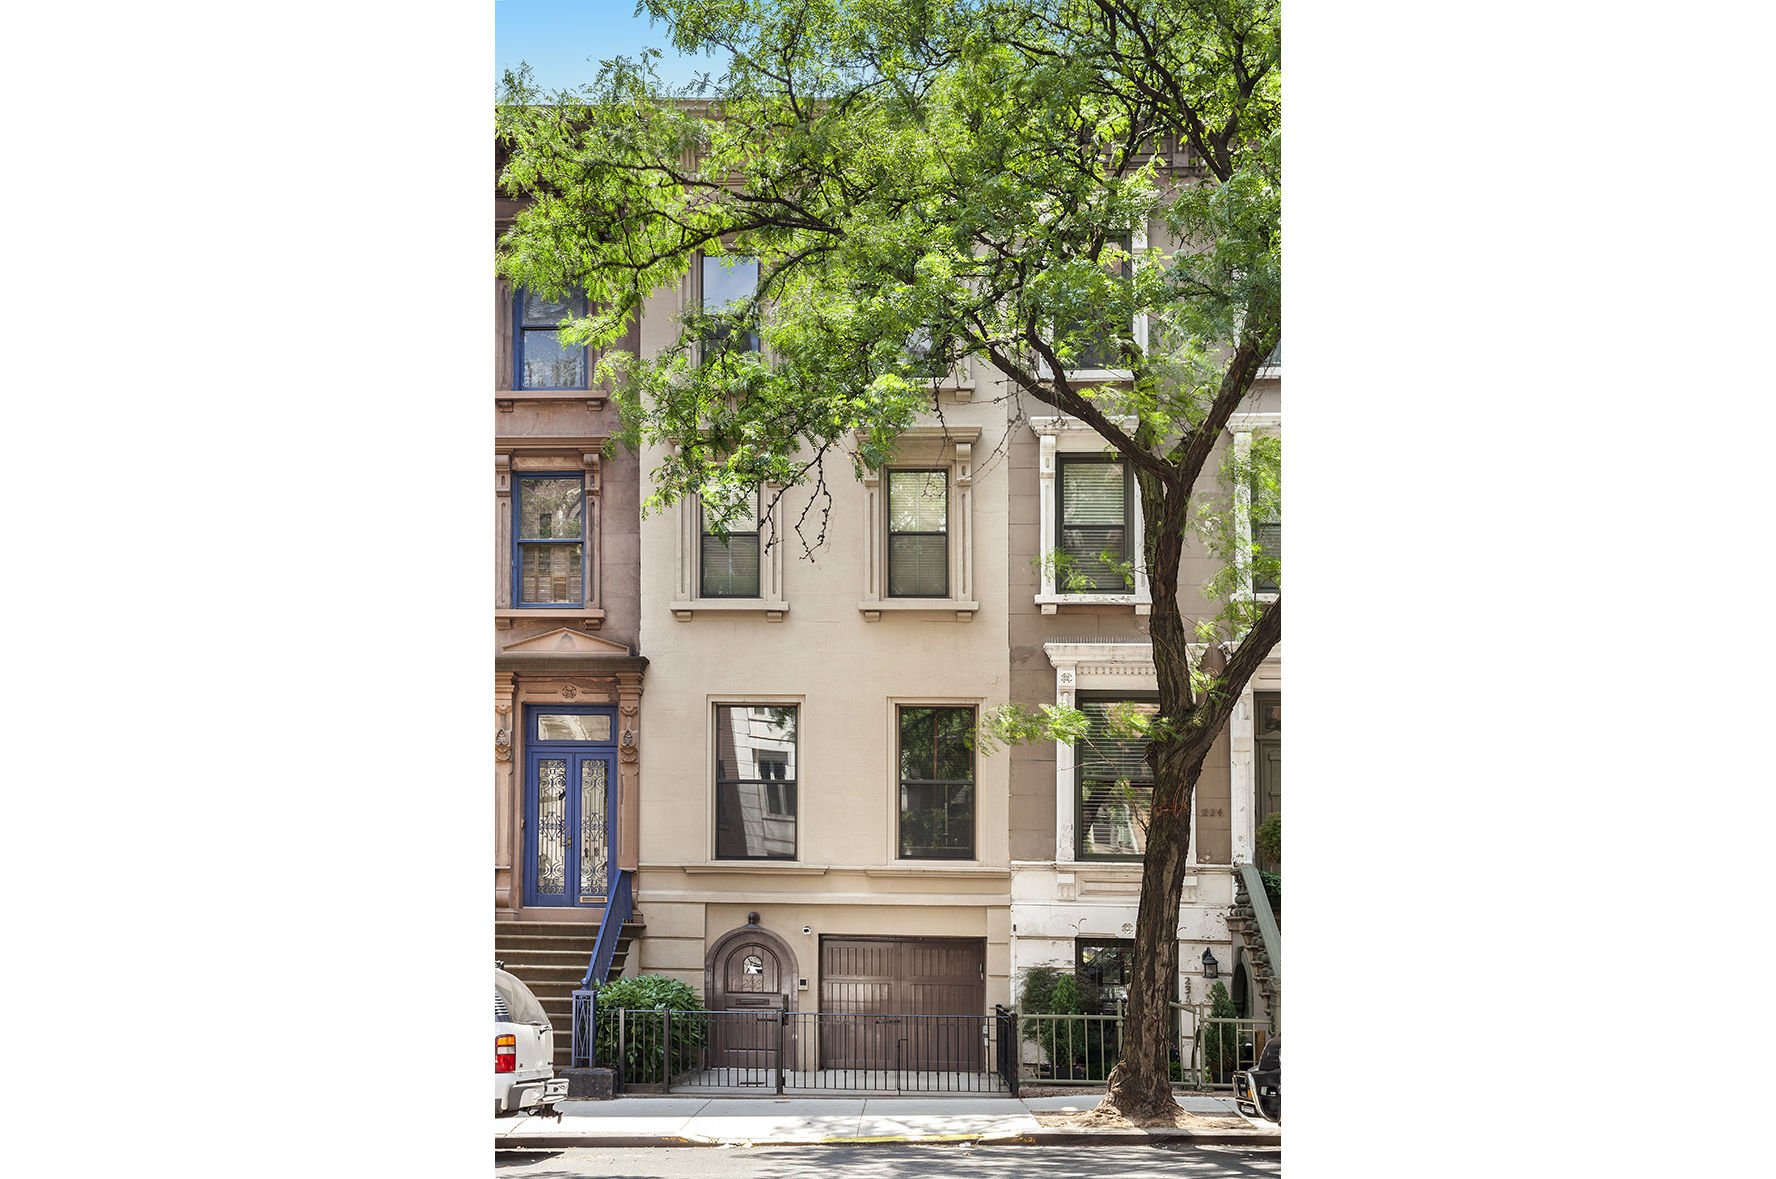 236 East 72nd Street Photo 1 - WR-2980651